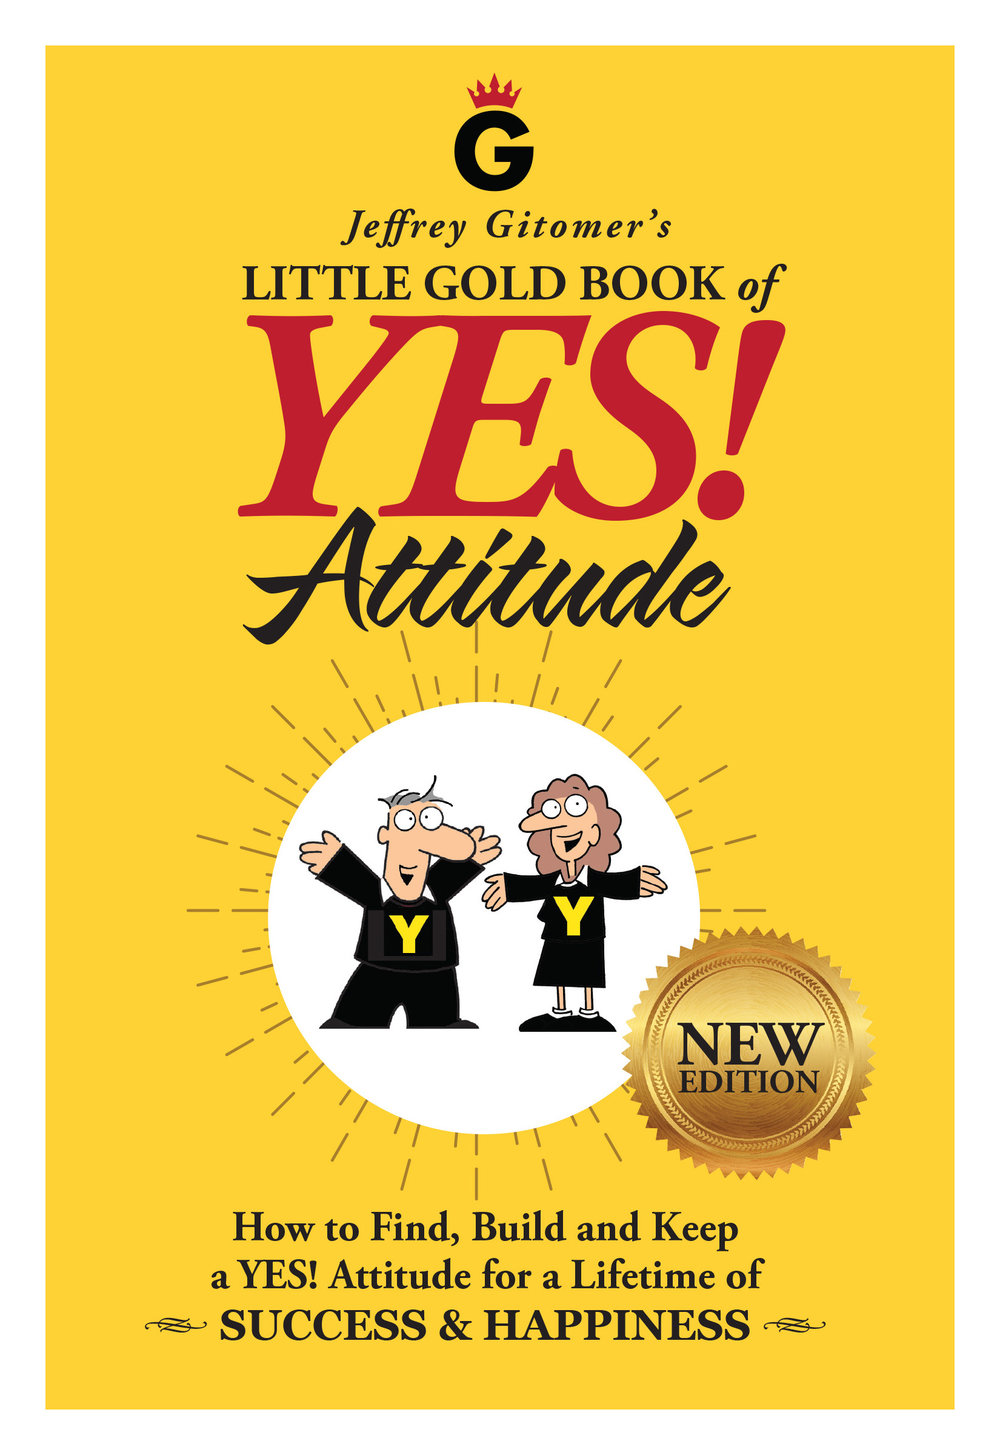 Jeffrey_Gitomer's_Little_Gold_Book_of_YES_Attitude.jpg